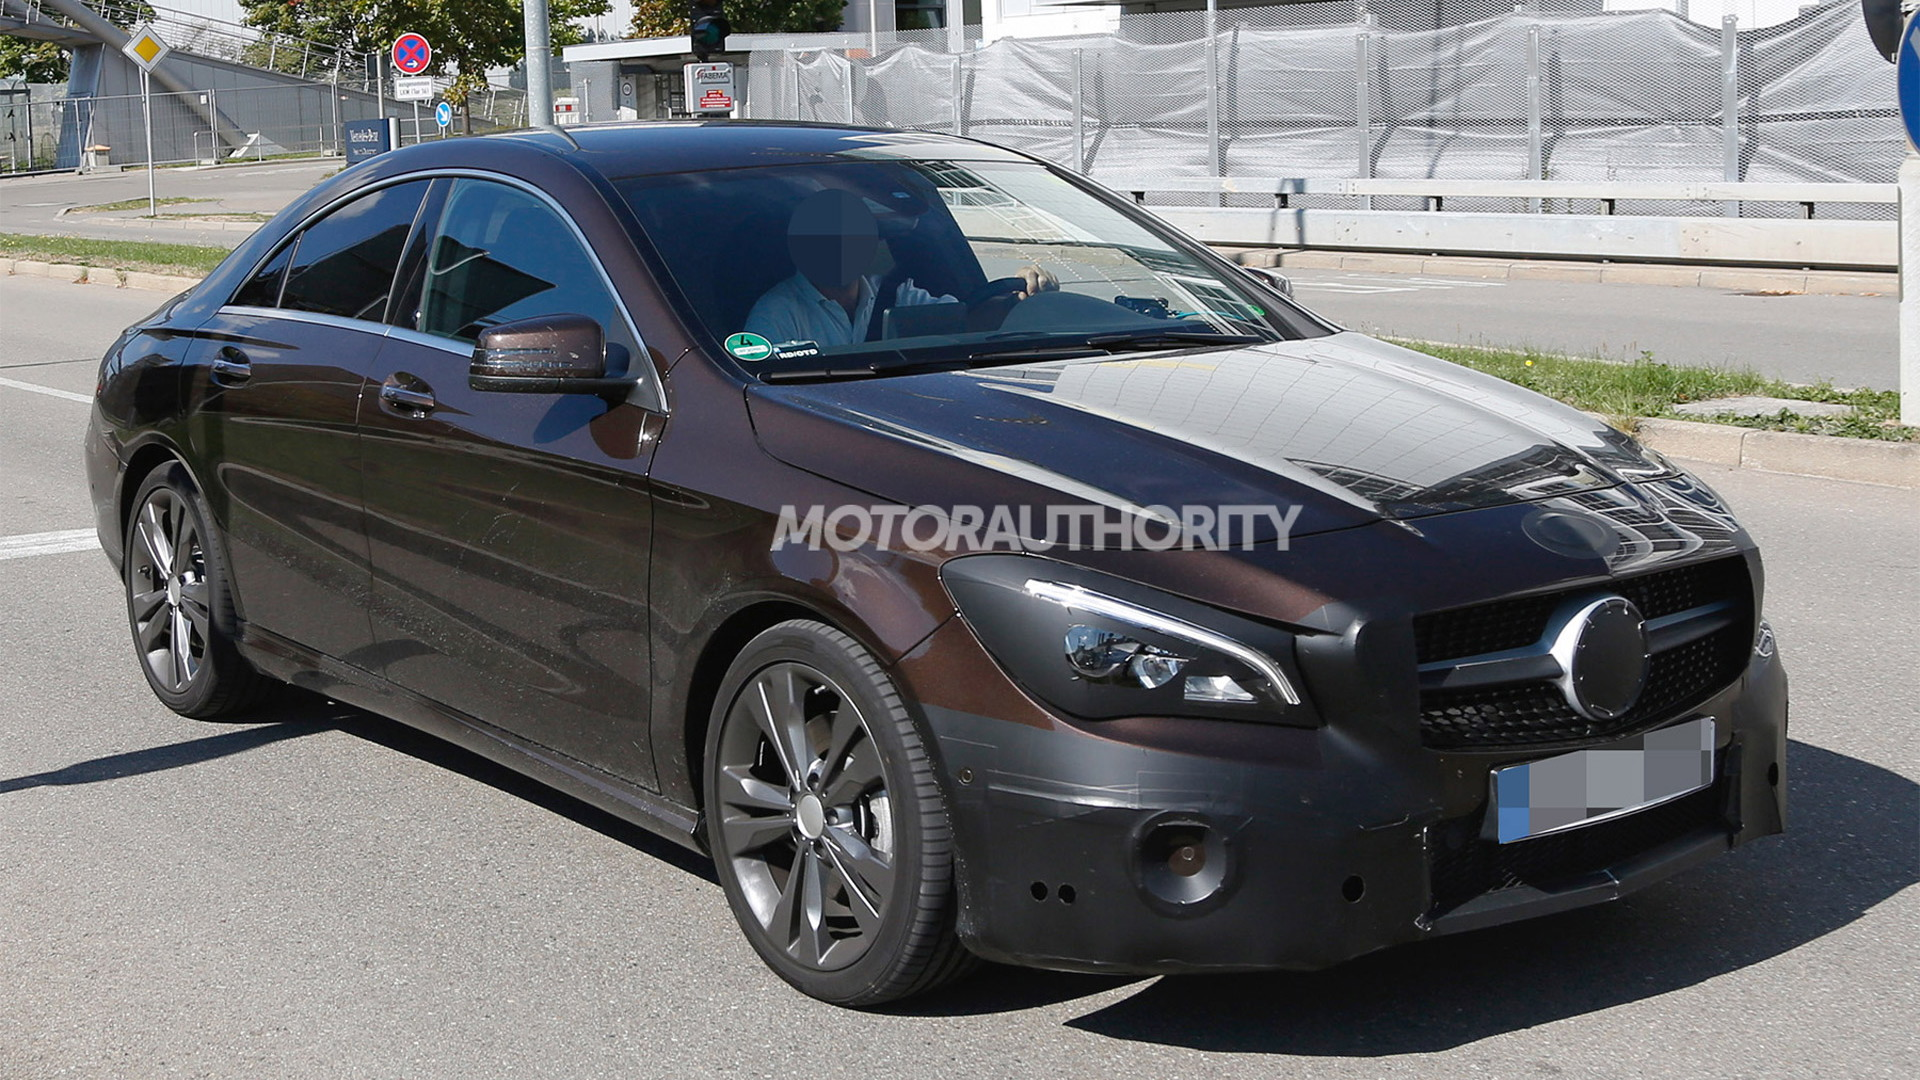 2017 Mercedes-Benz CLA-Class facelift spy shots - Image via S. Baldauf/SB-Medien